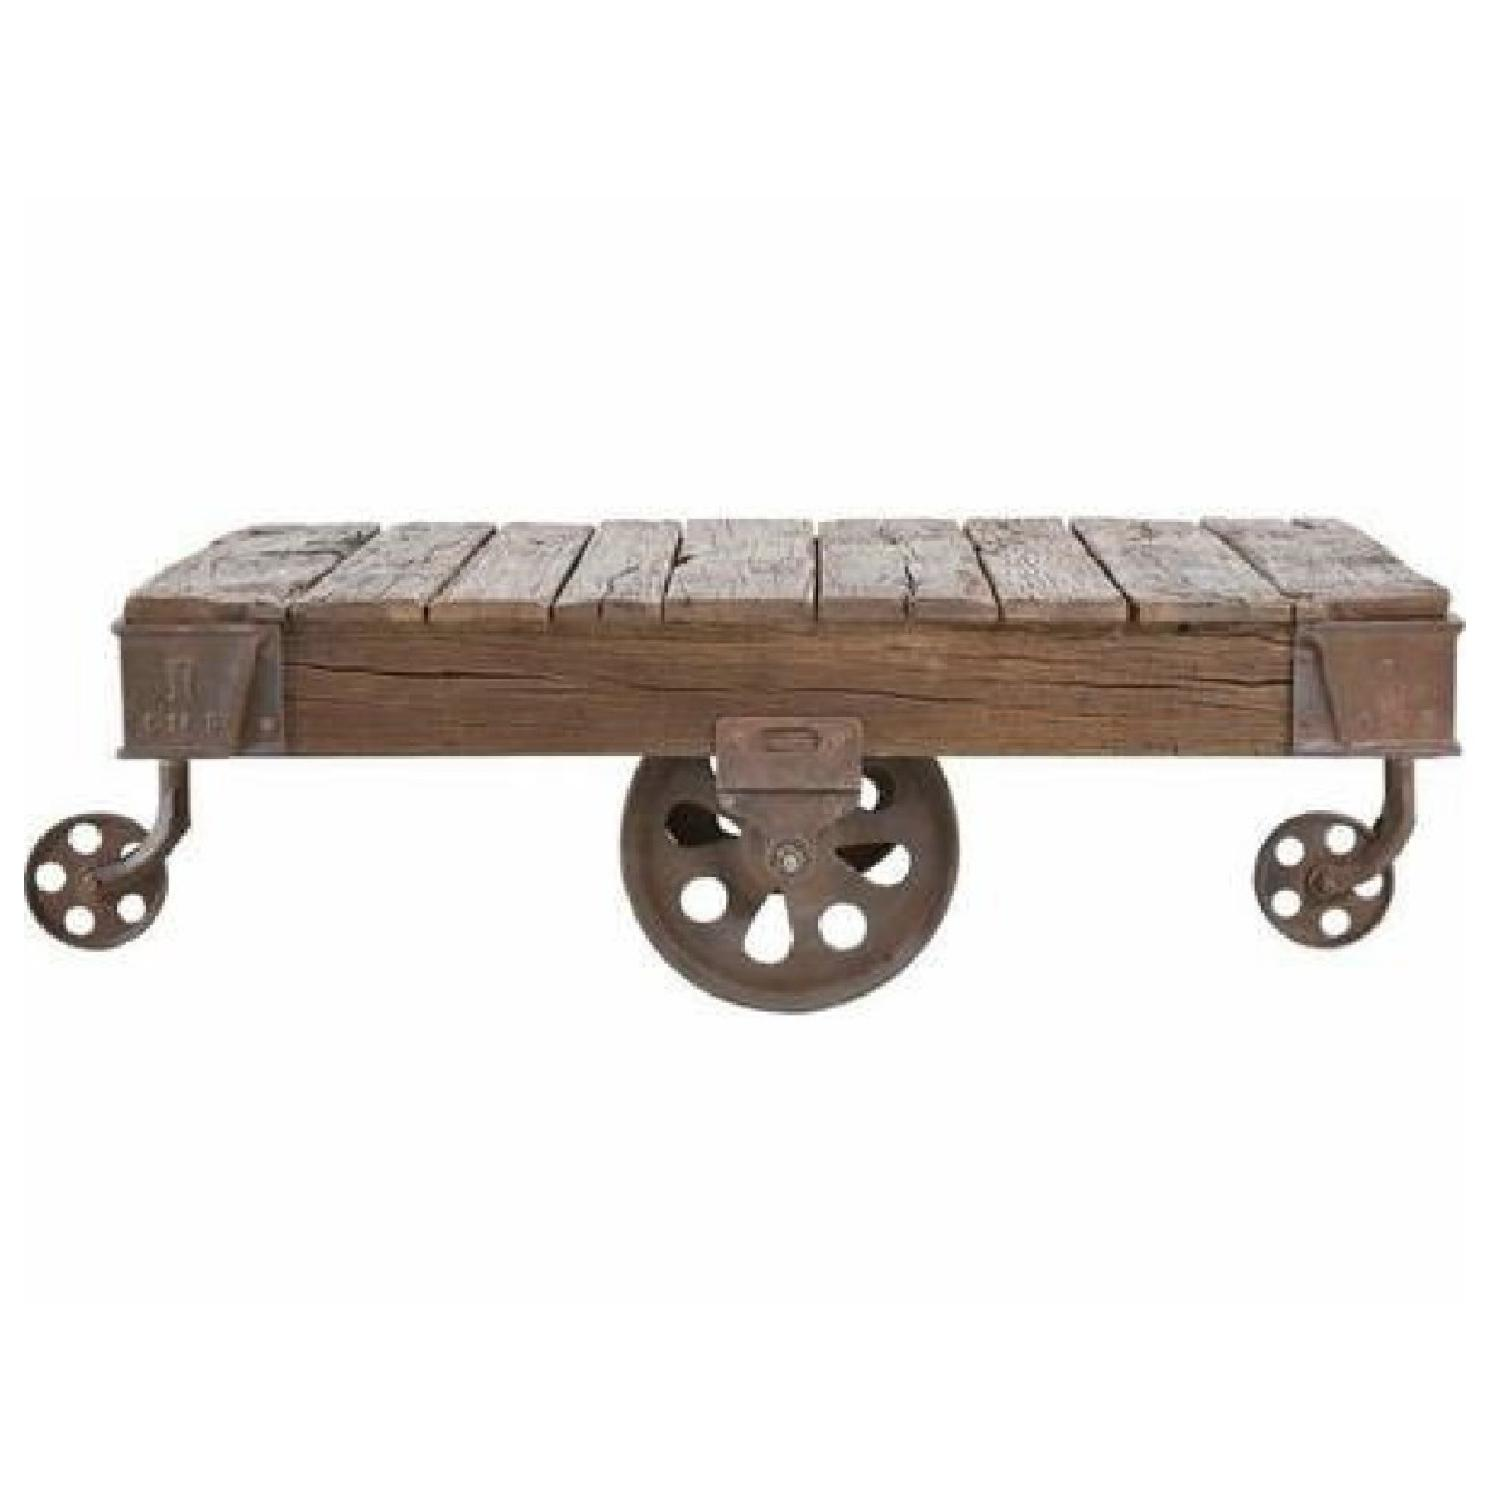 Railway sleeper coffee table aptdeco railway sleeper coffee table railway sleeper coffee table 0 geotapseo Gallery